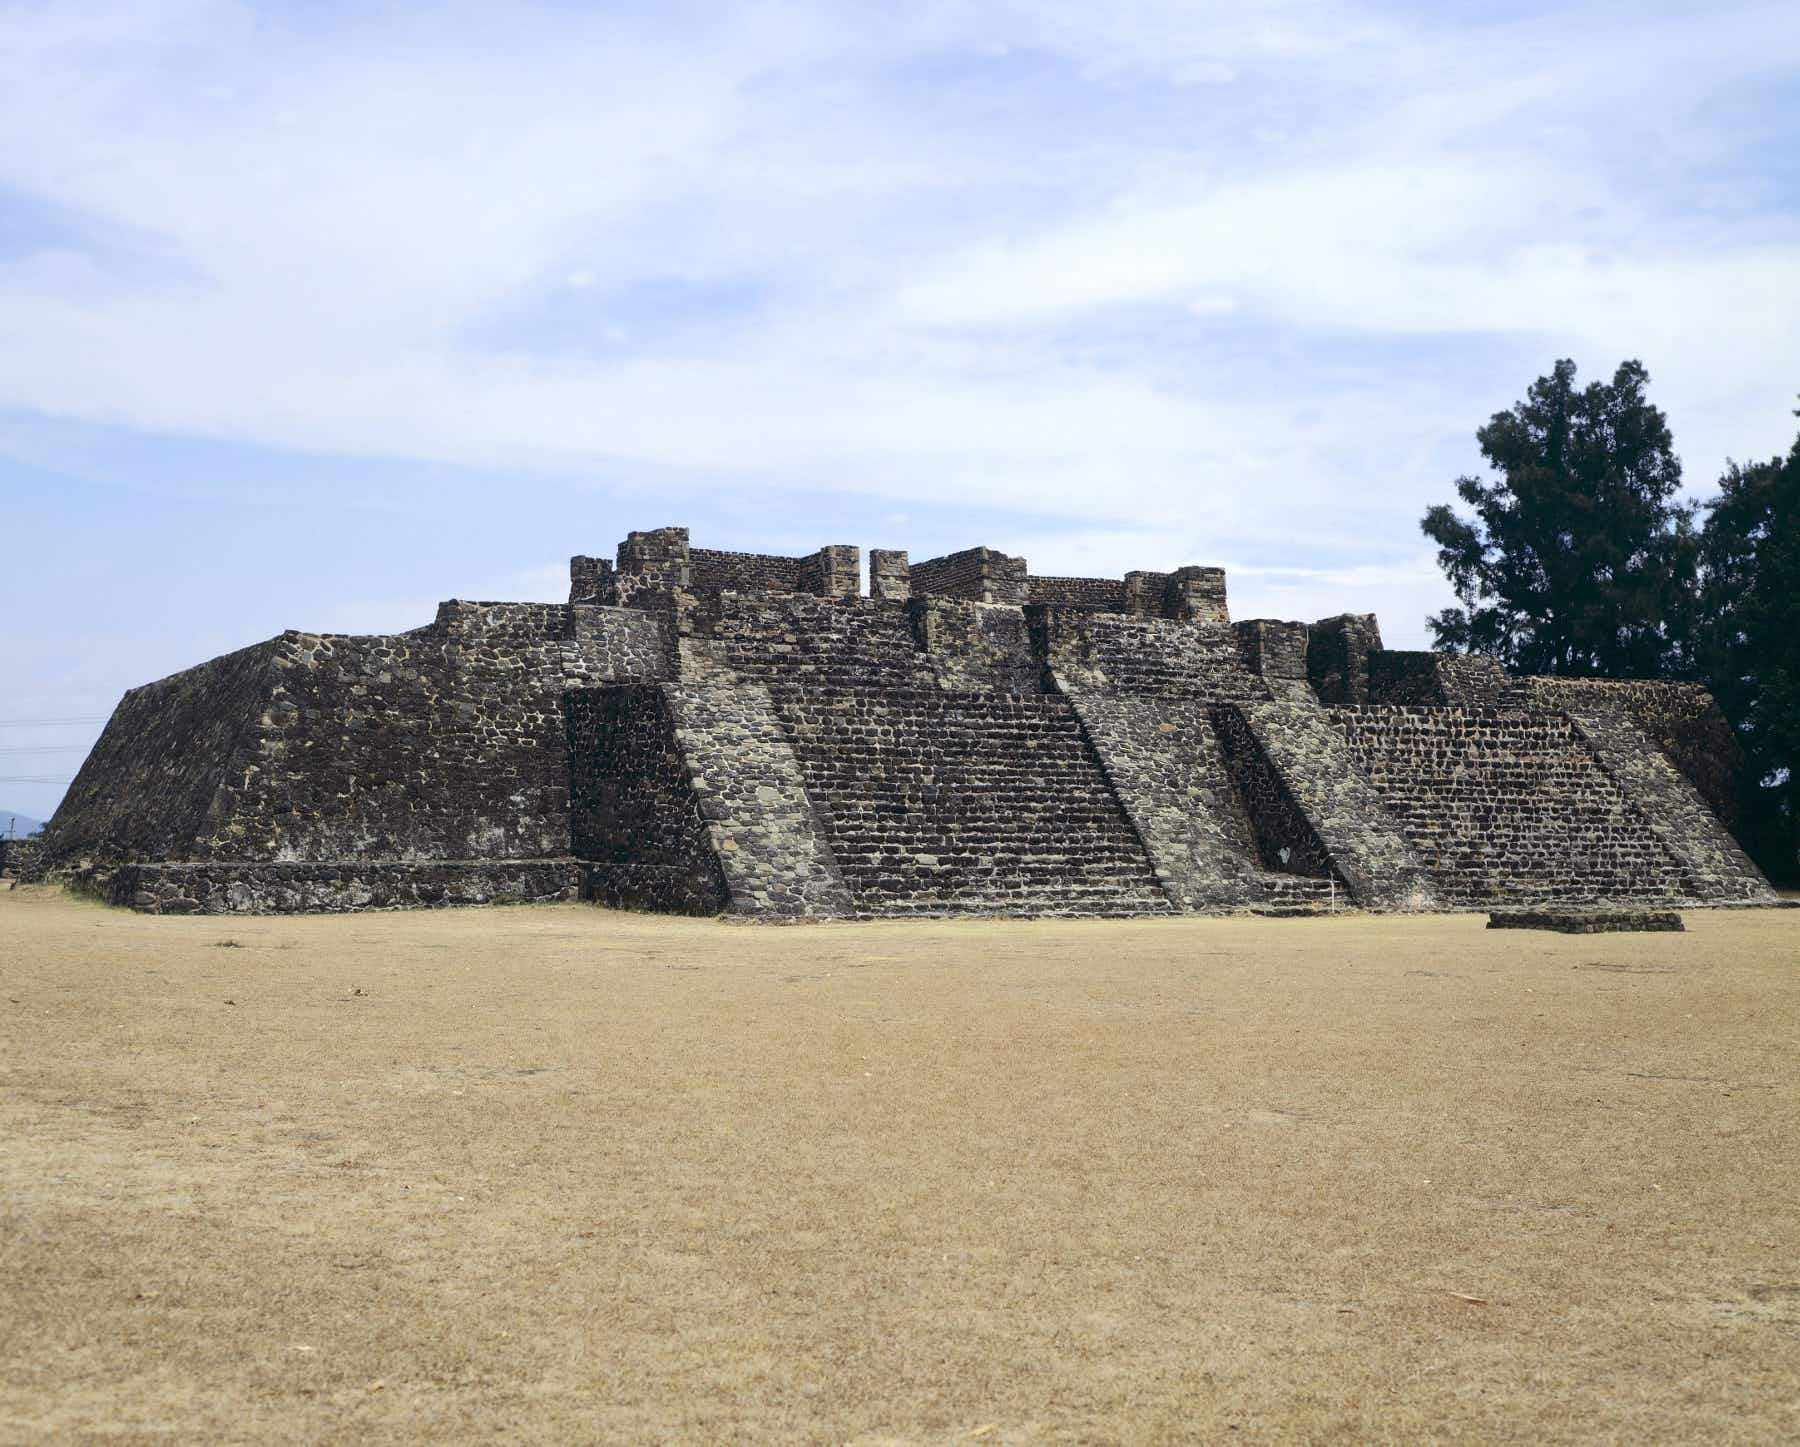 An Aztec temple has been discovered hiding under a pyramid for 800 years